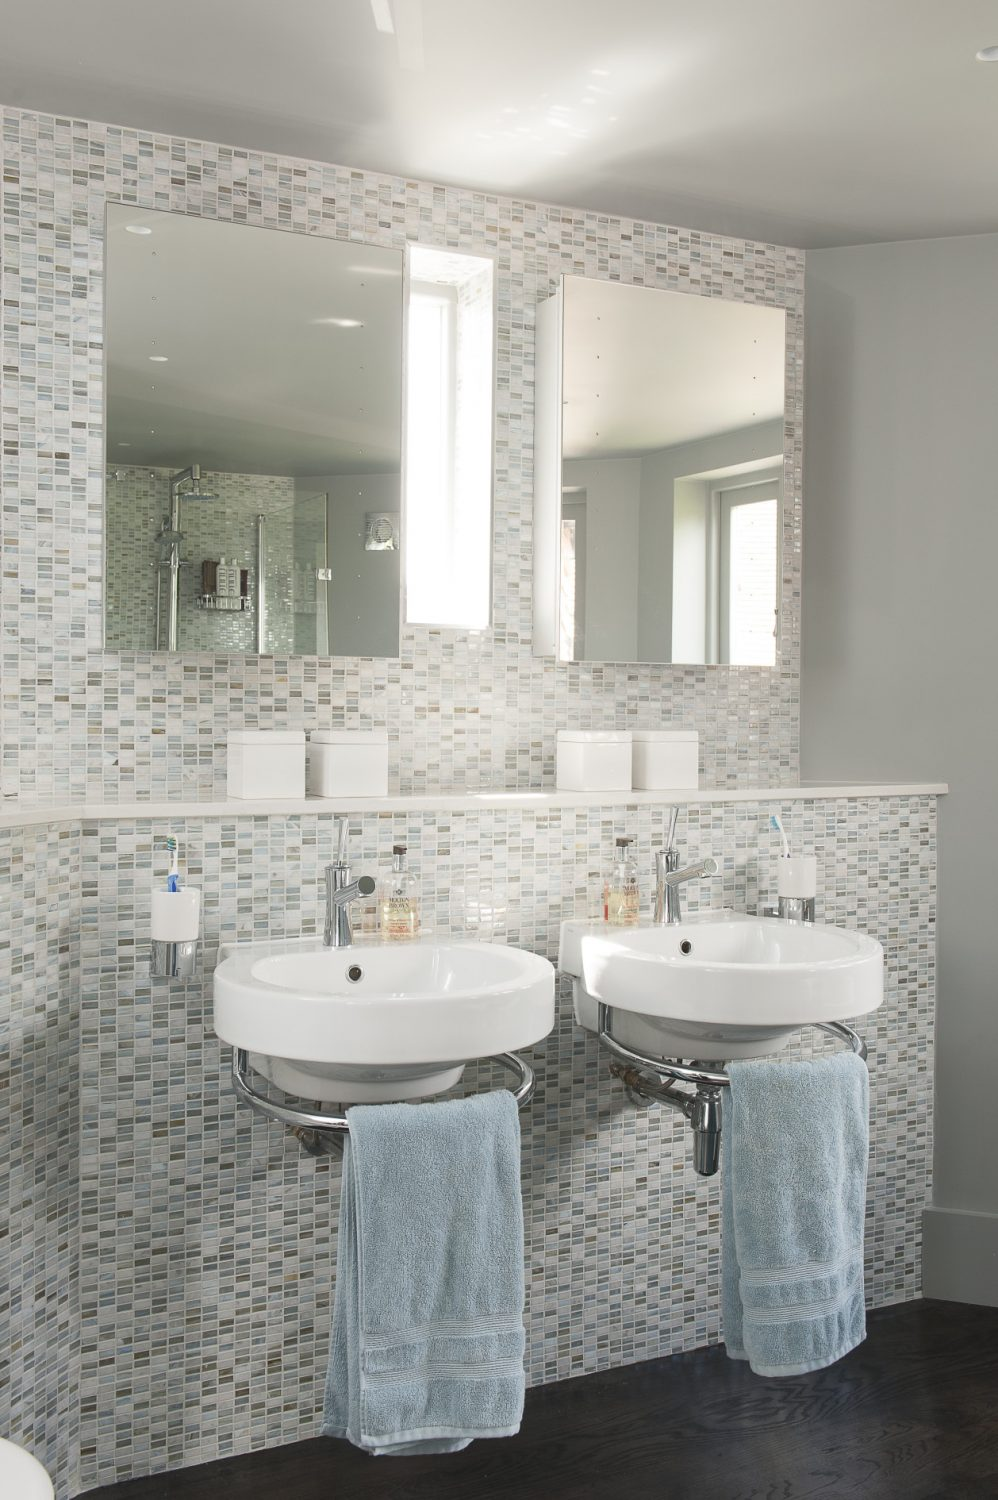 The natural light bounces off the iridescent rectangular tiles covering the wall behind the twin basins